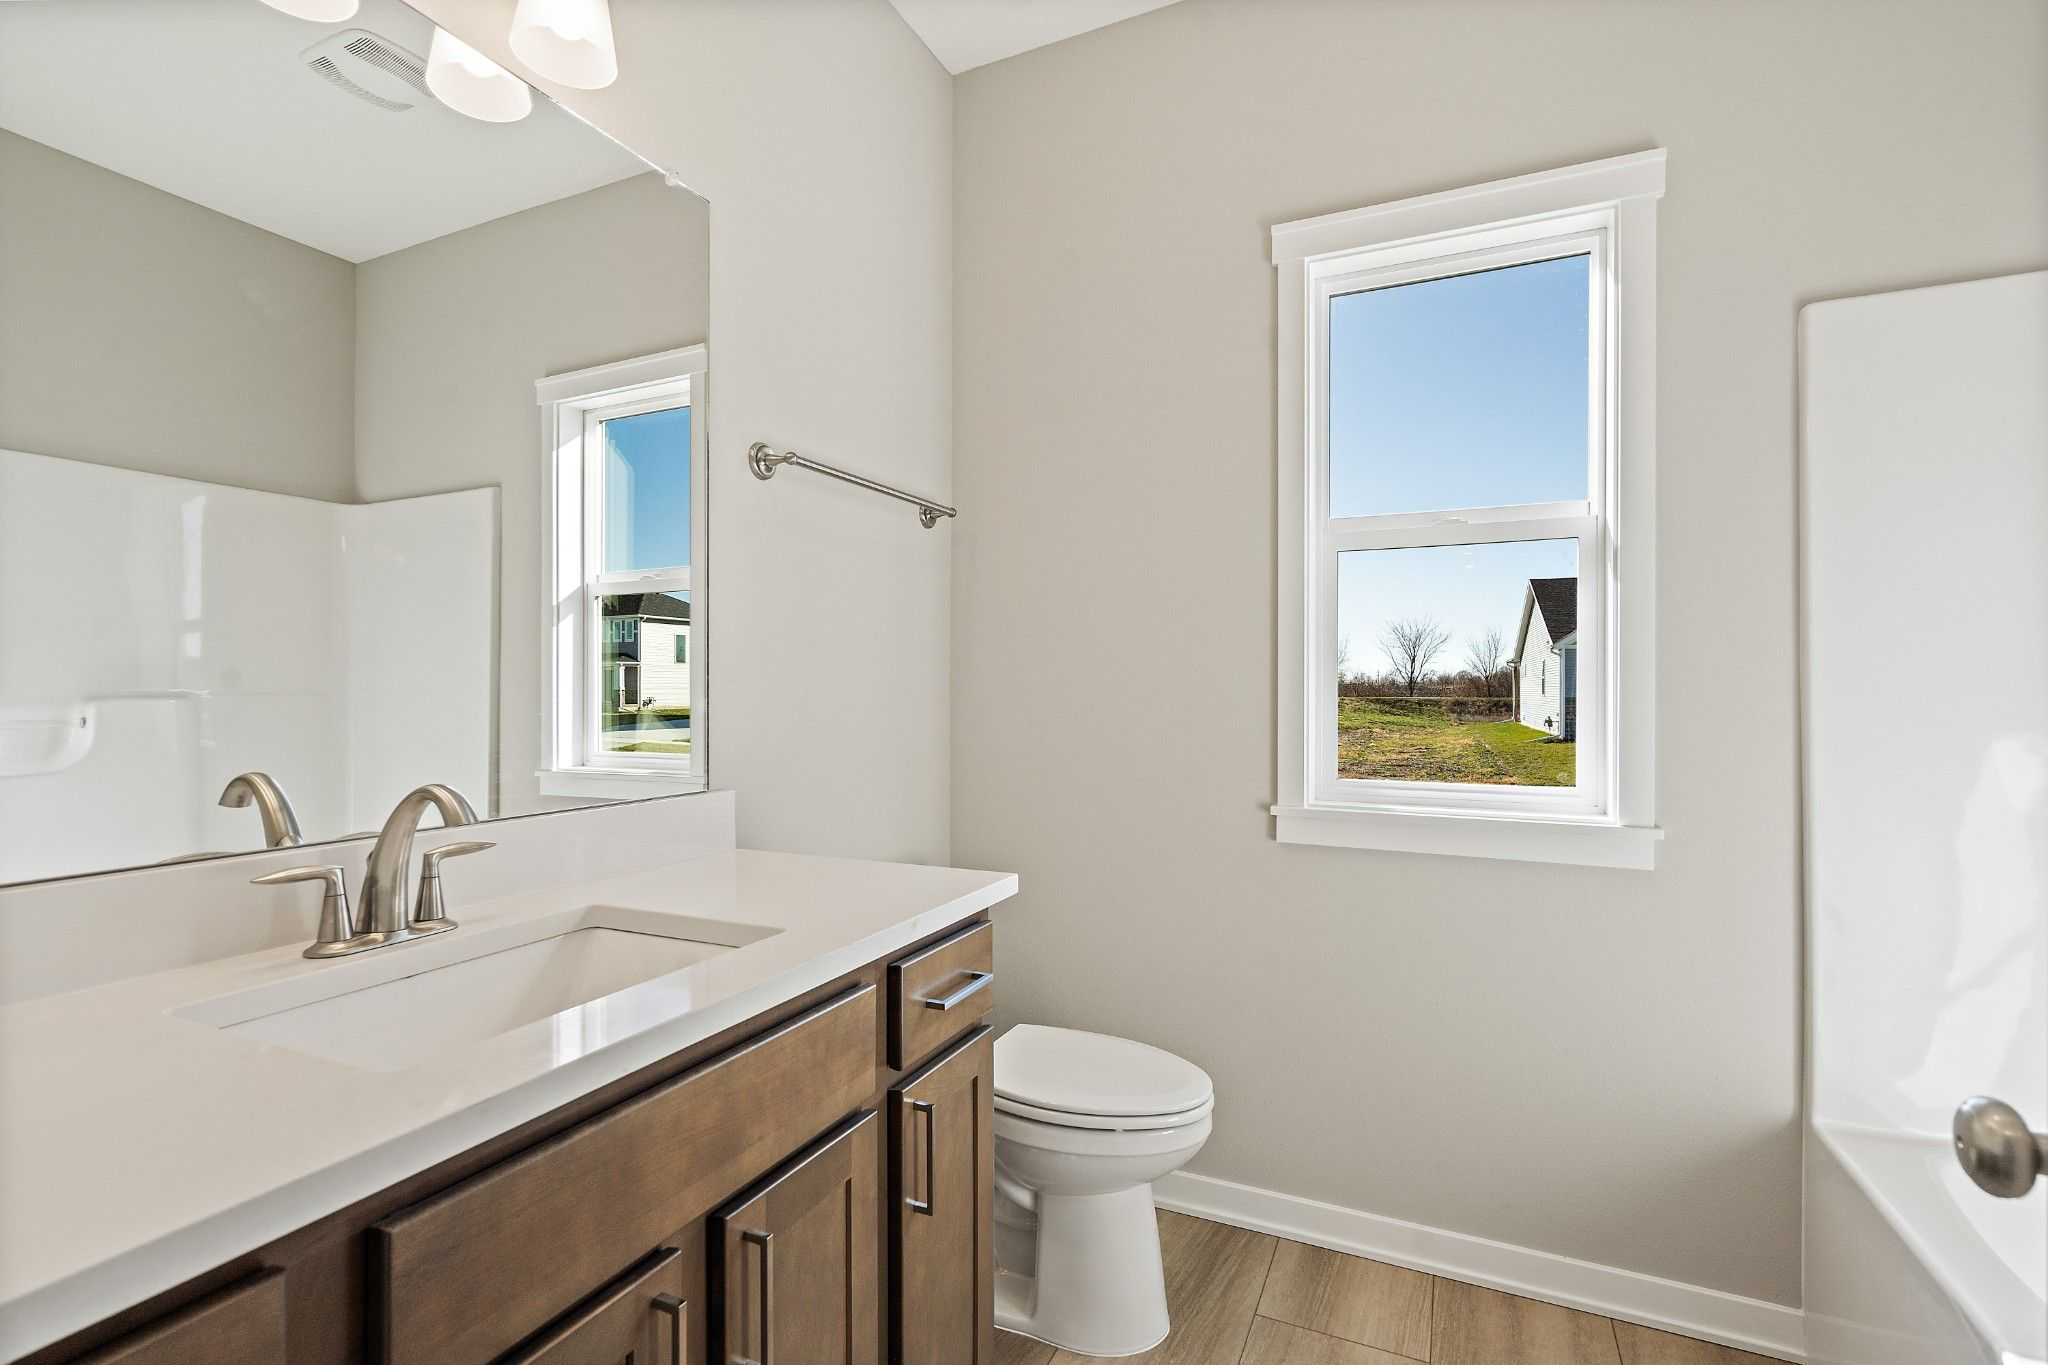 Bathroom featured in the Linden - IA By Summit Homes in Des Moines, IA